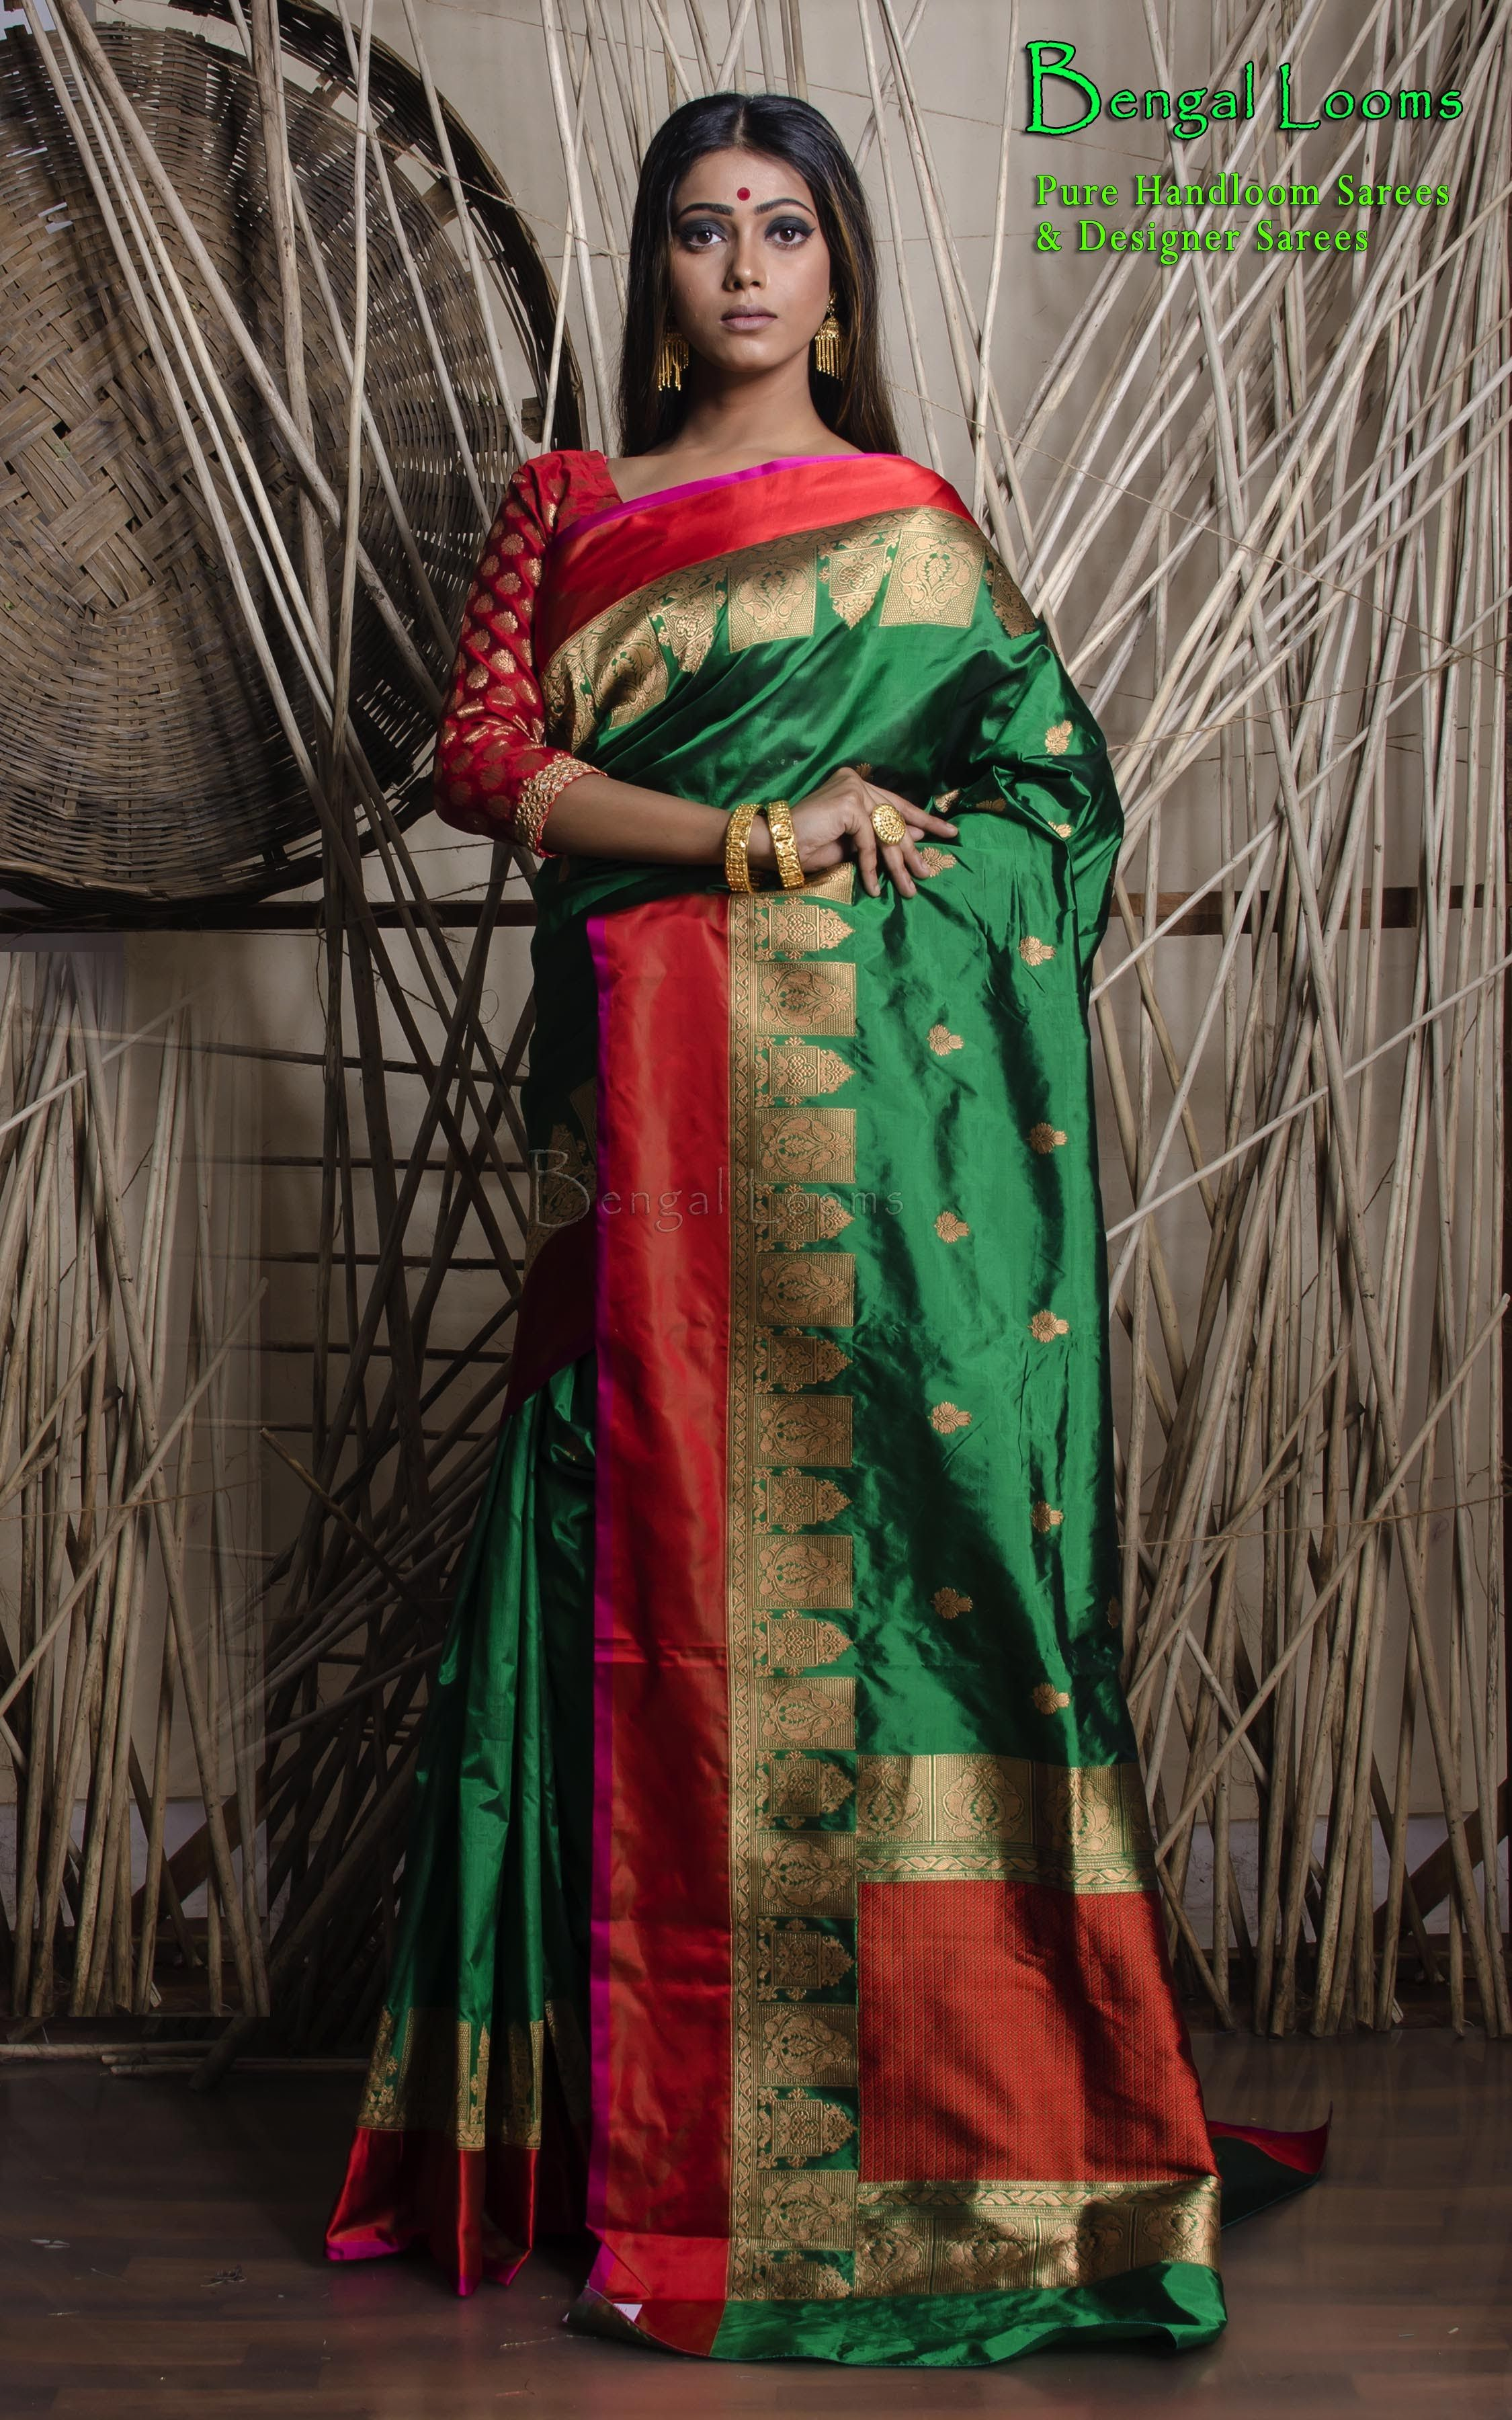 210e9f25d6 Beautiful Dark Green Katan Silk Banarasi Saree available for sale from  Bengal Looms.